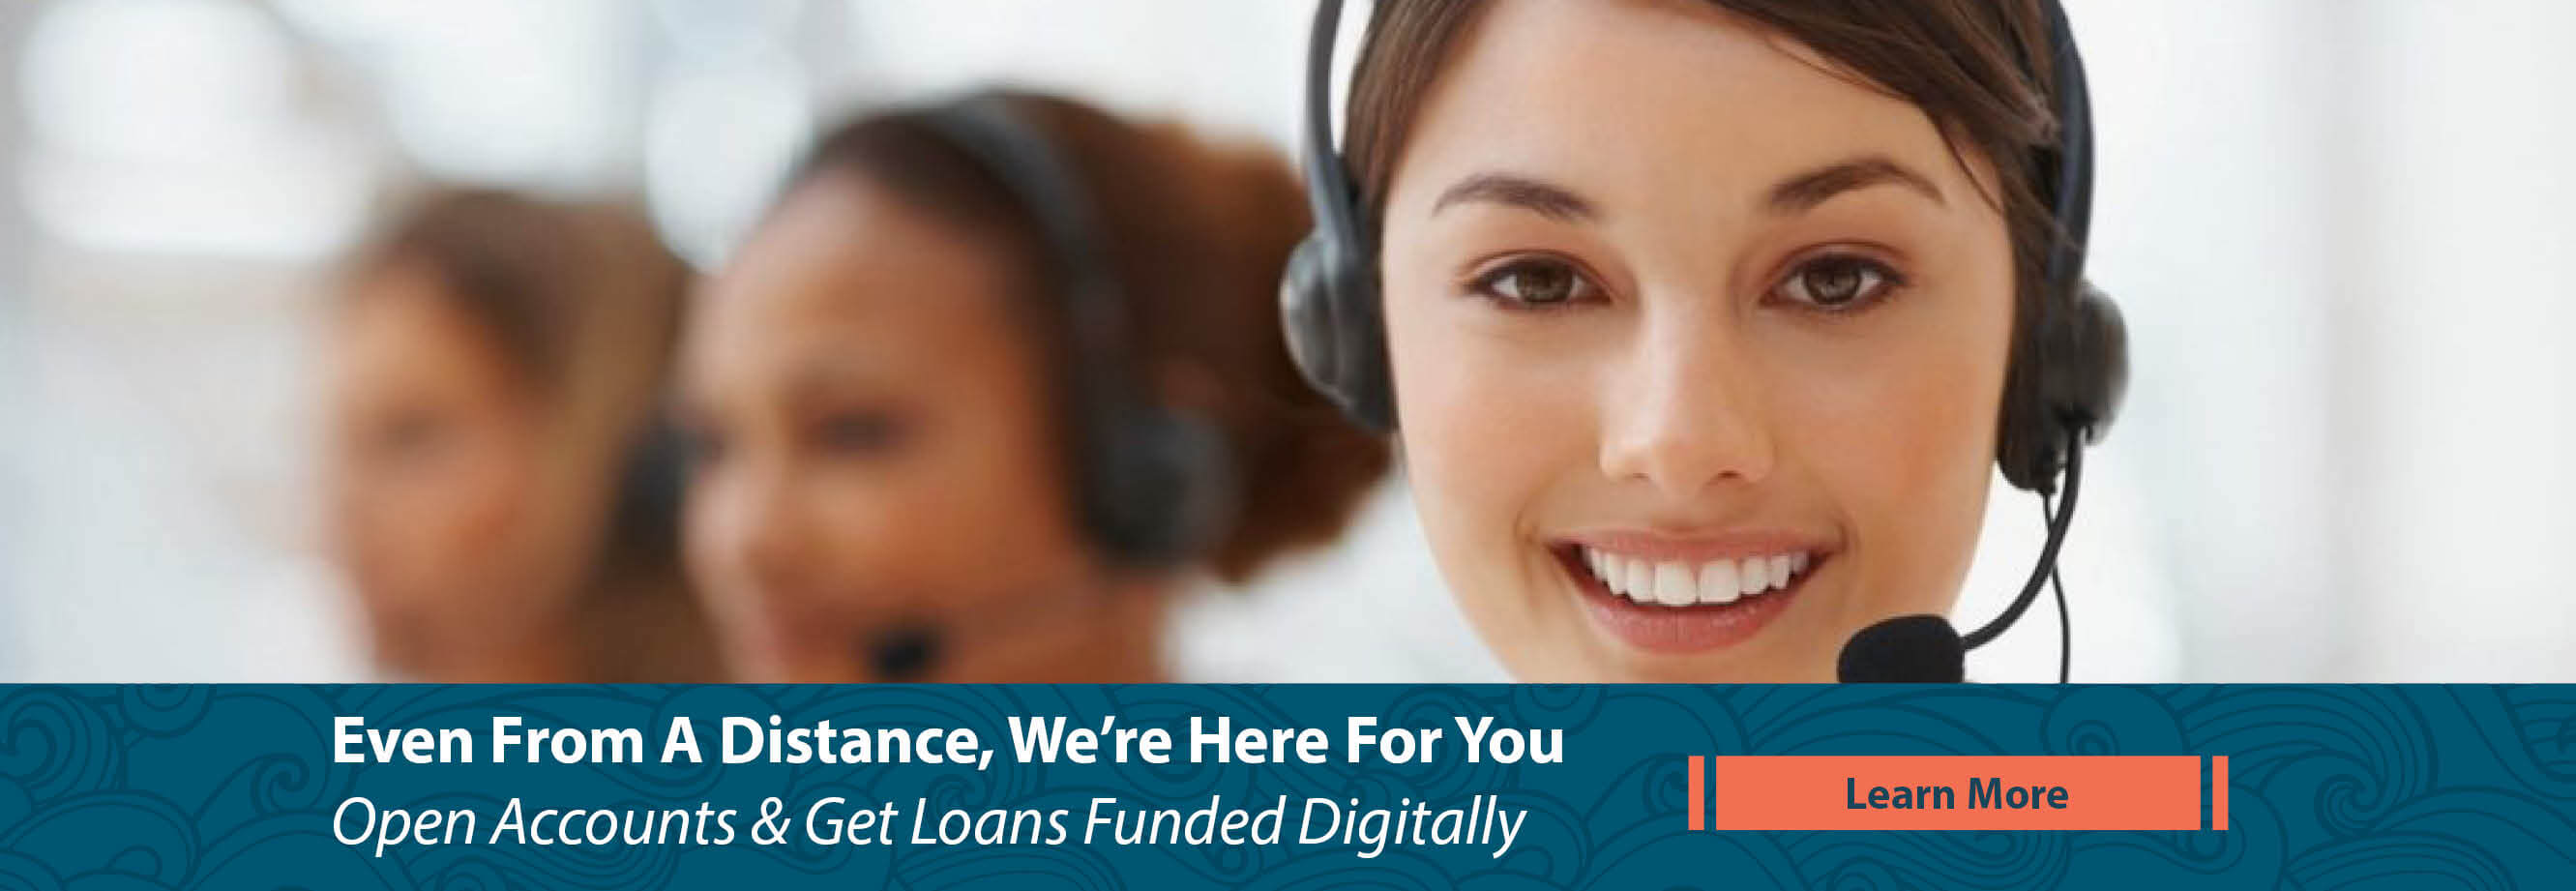 Open Accounts and Get Loans Funded Digitally